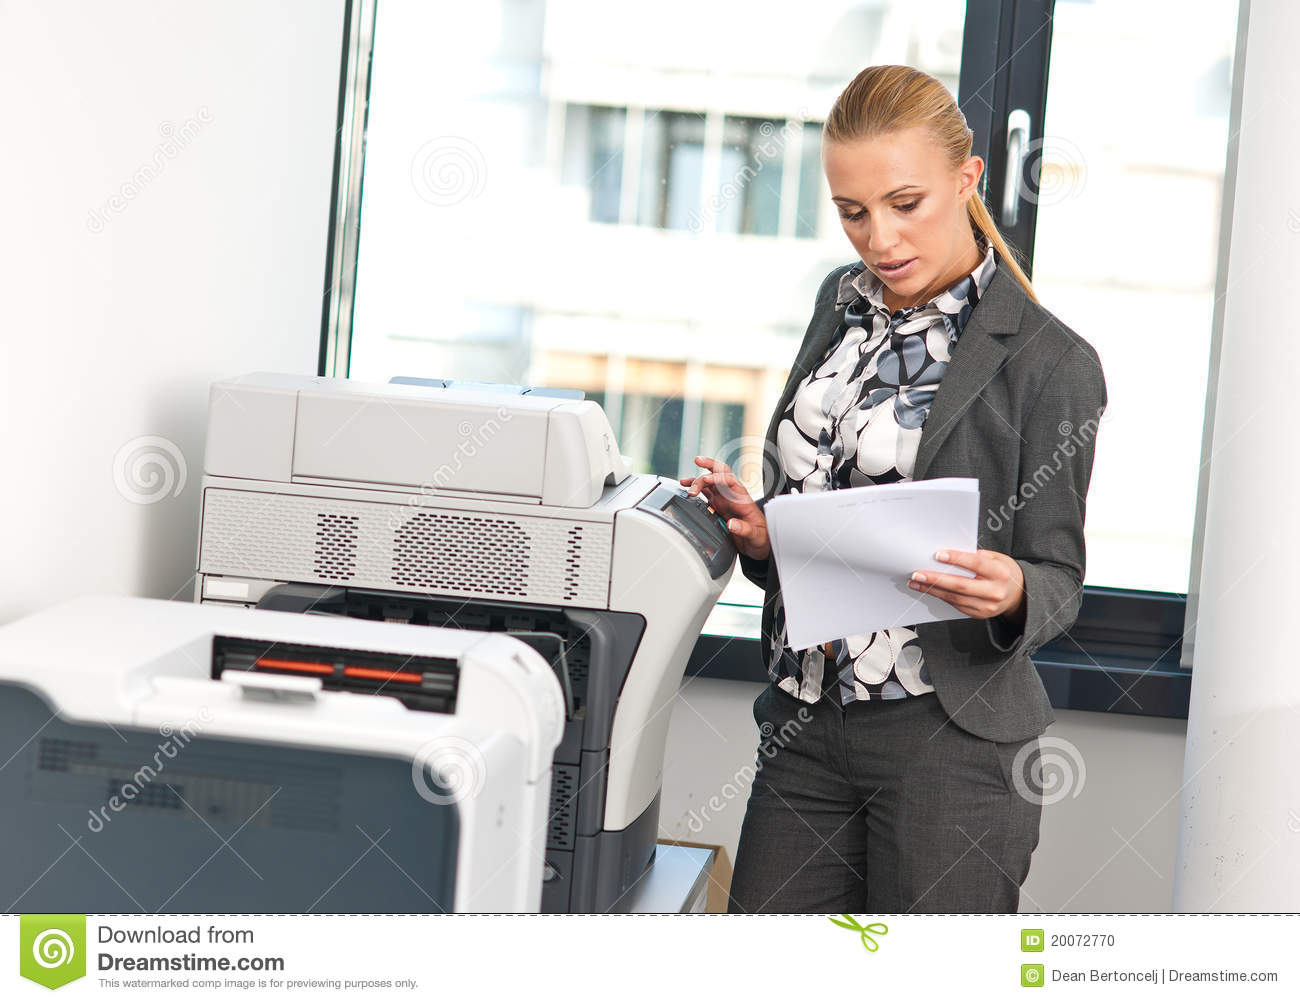 girl butt on copy machine